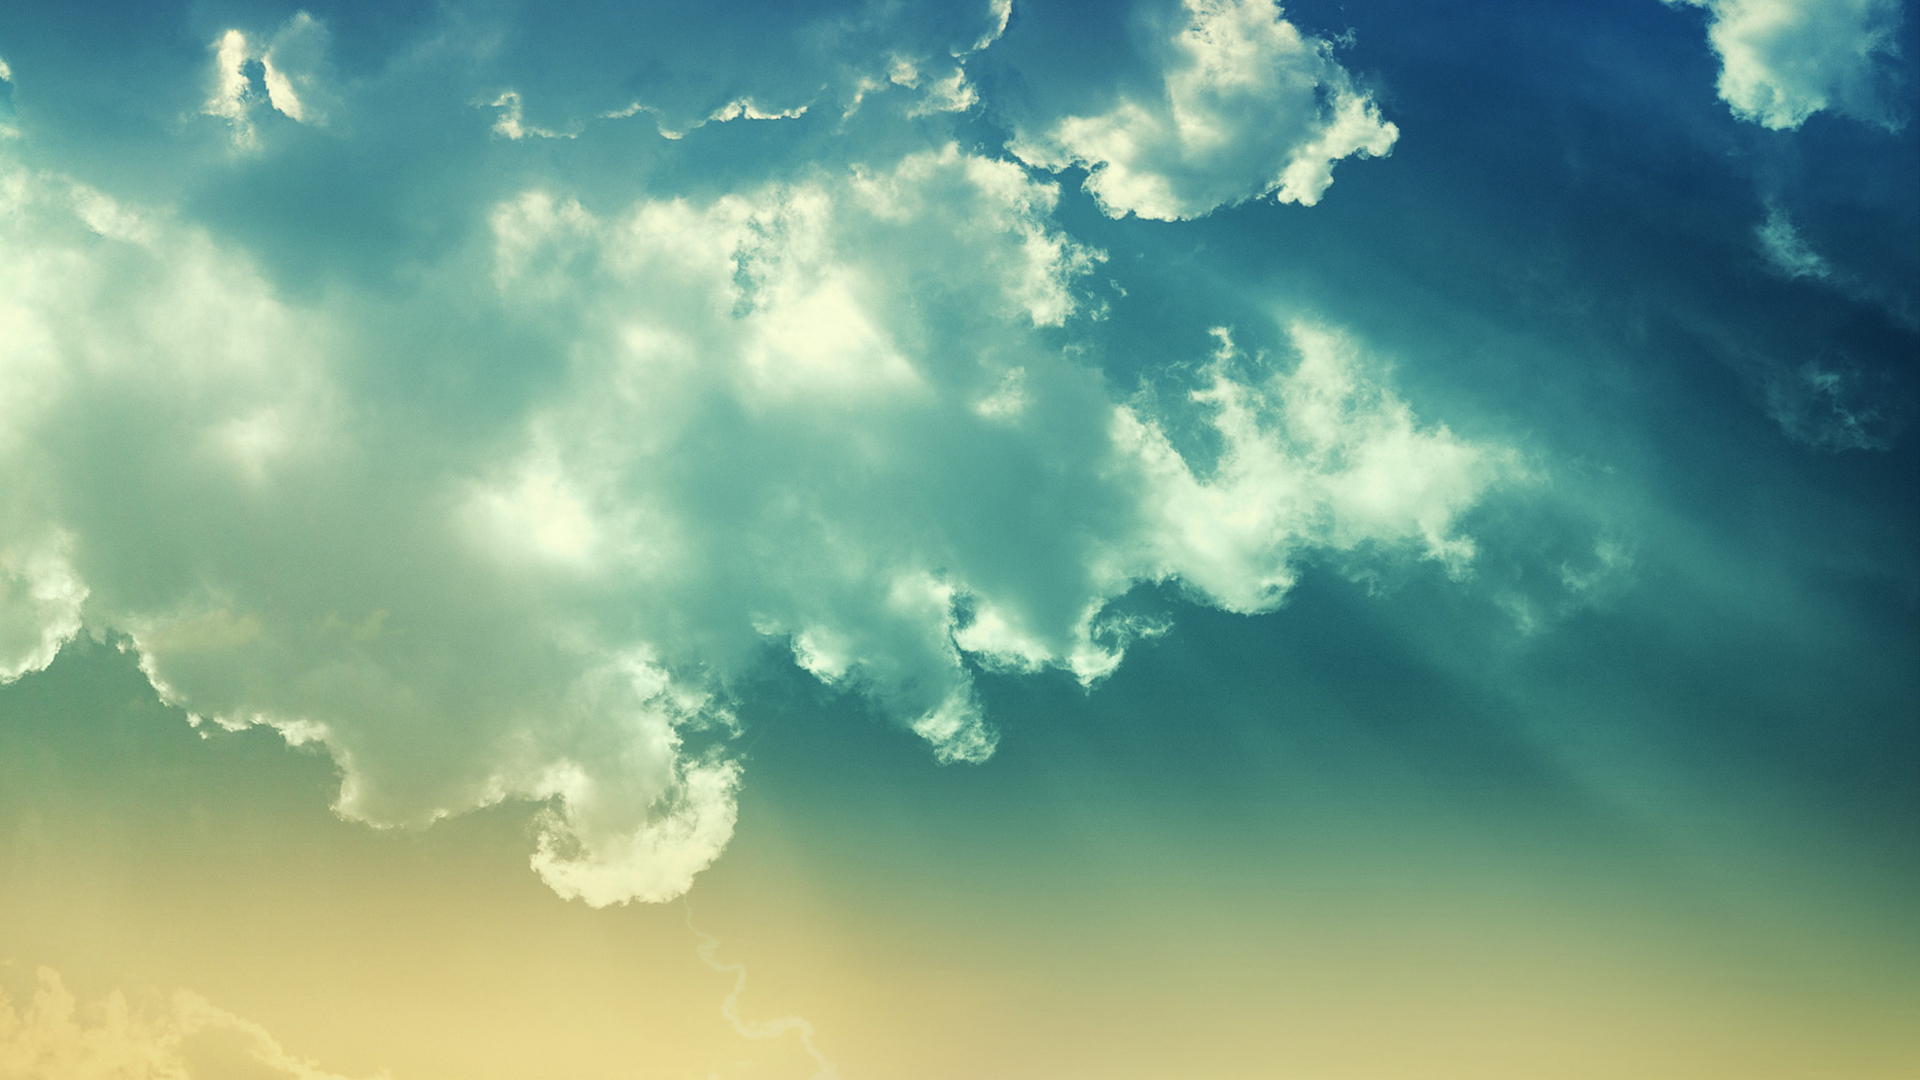 wallpaper summer sky daily sites 1920x1080